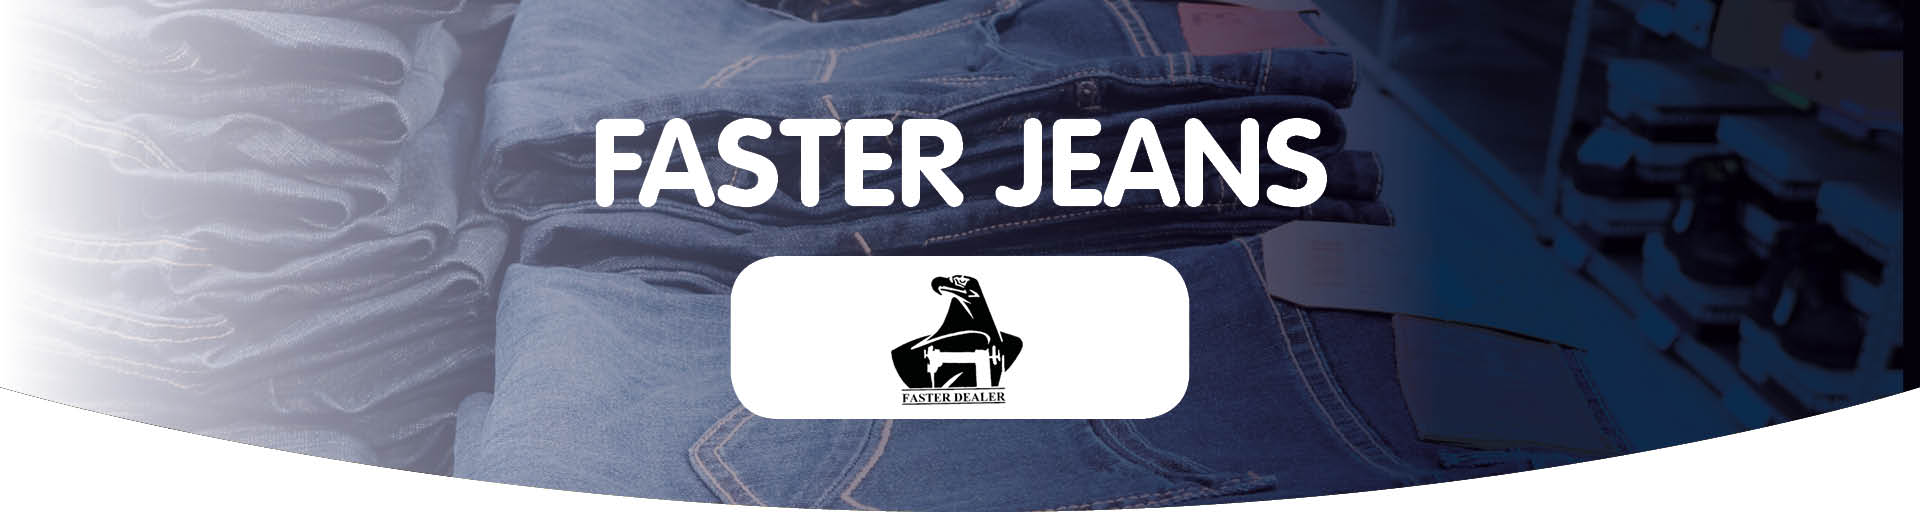 Faster Jeans